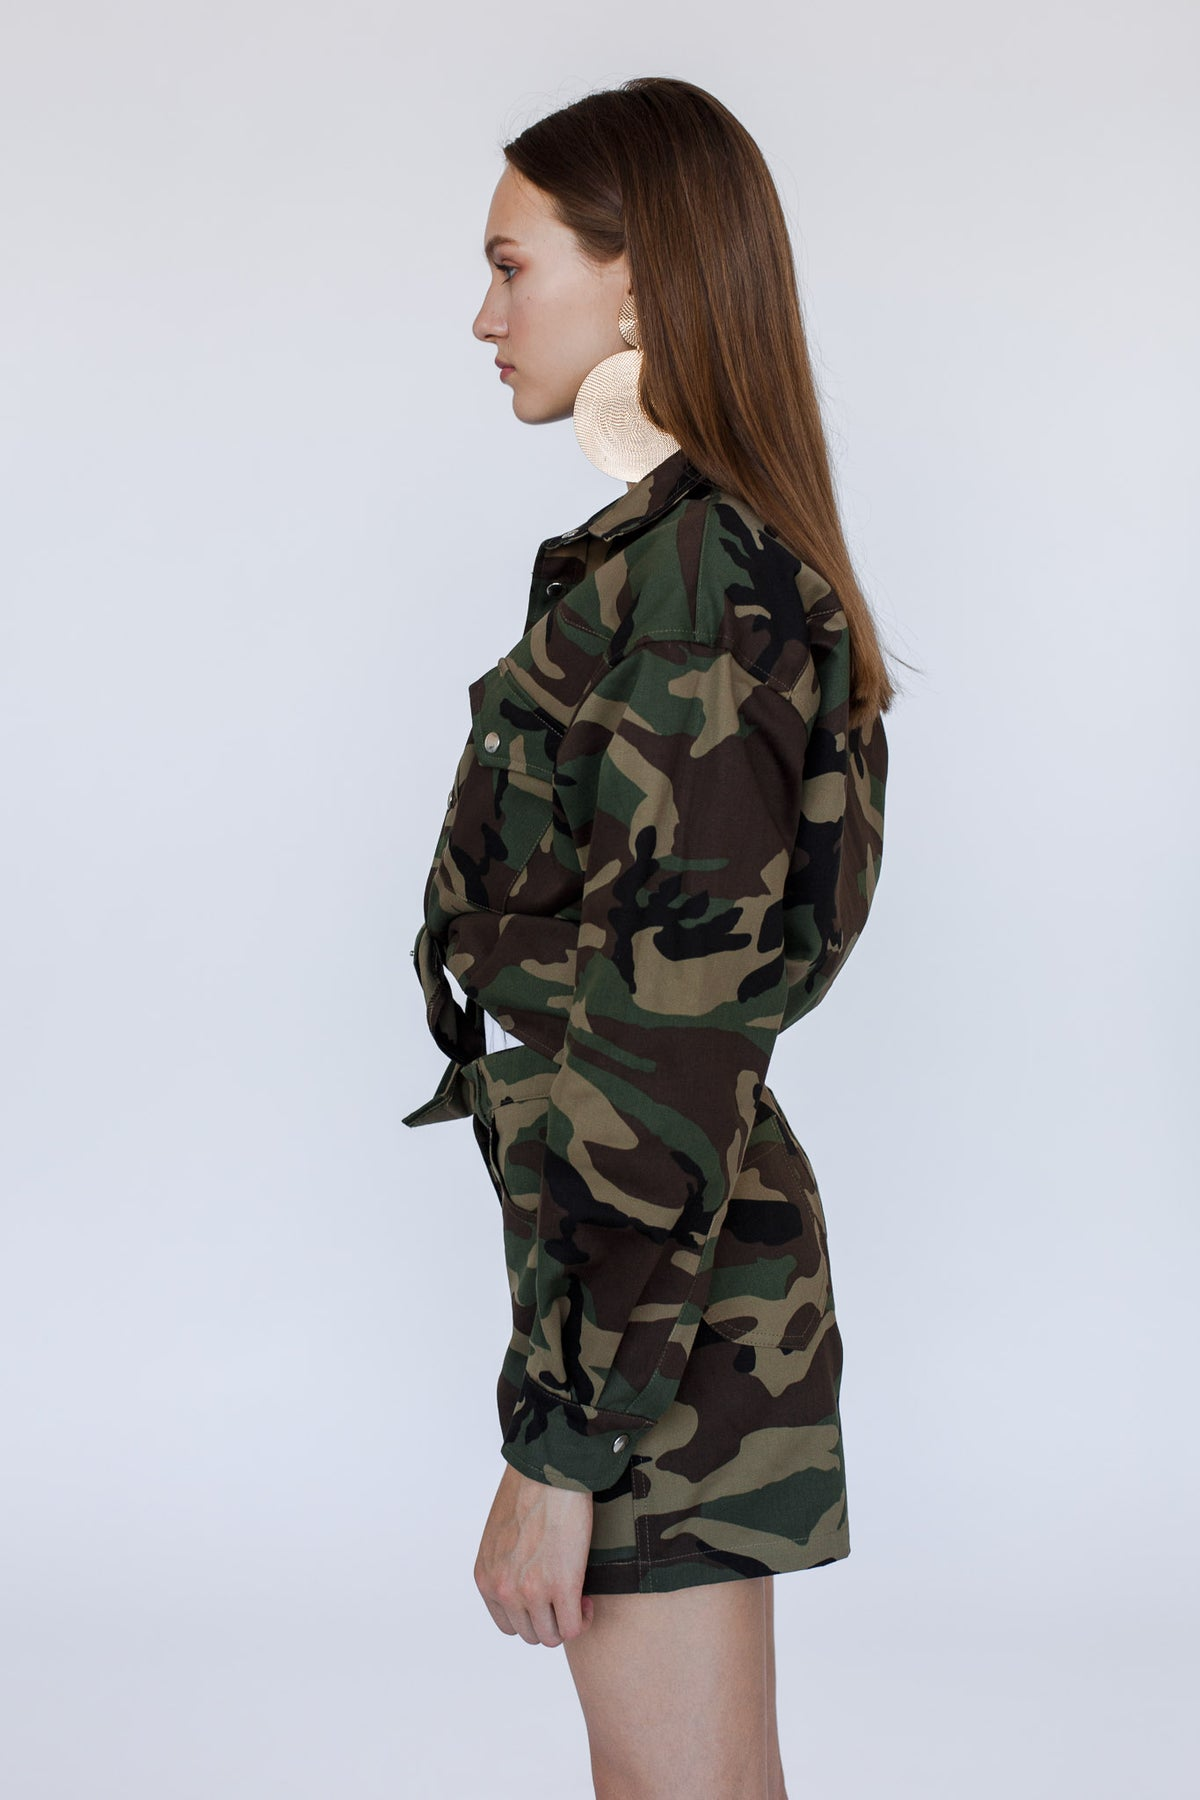 Camo-Series-Oversize-Camouflage-Print-Jacket-Outwear-Clothing-le-slap.jpg